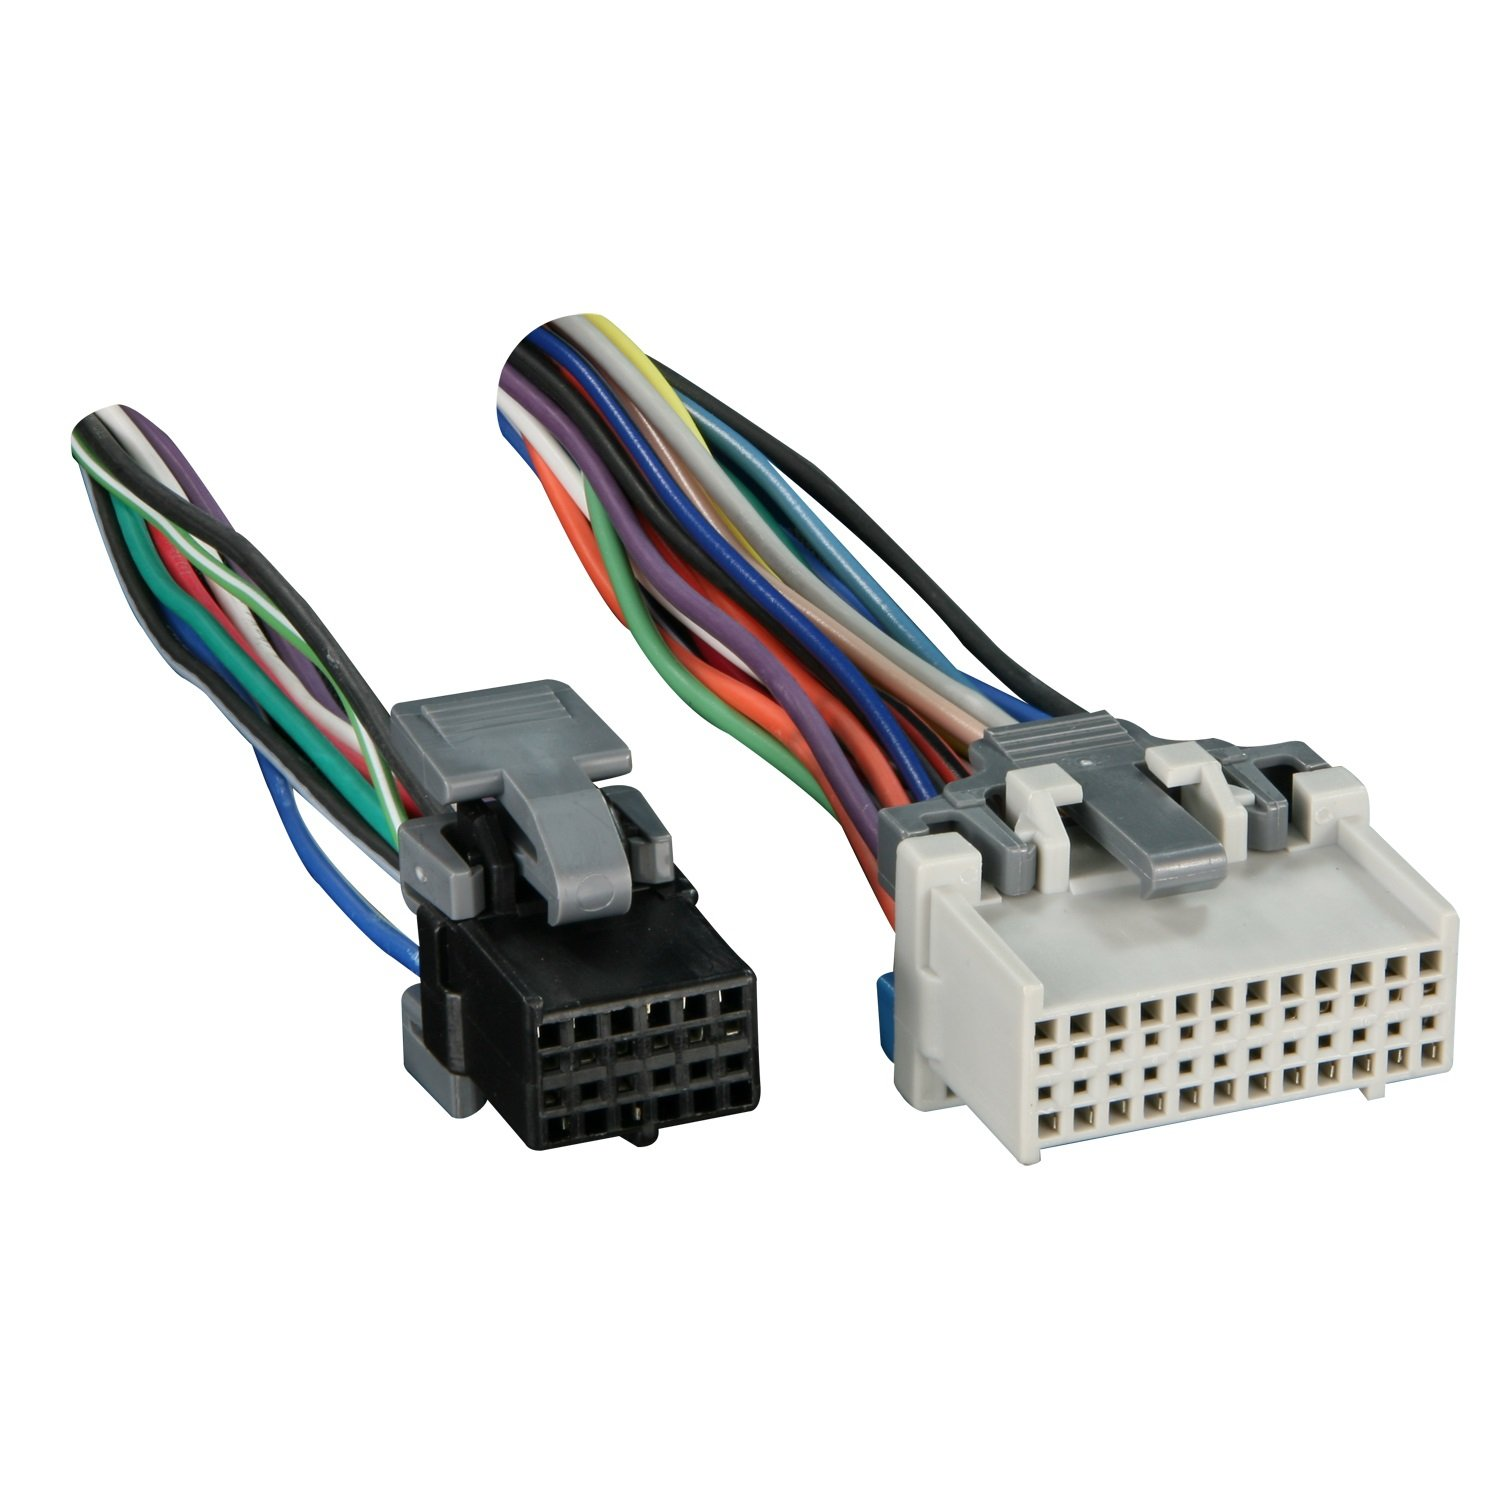 711log4bdML._SL1500_ amazon com metra turbowires 71 2003 1 wiring harness car electronics what is a wire harness in a car at nearapp.co